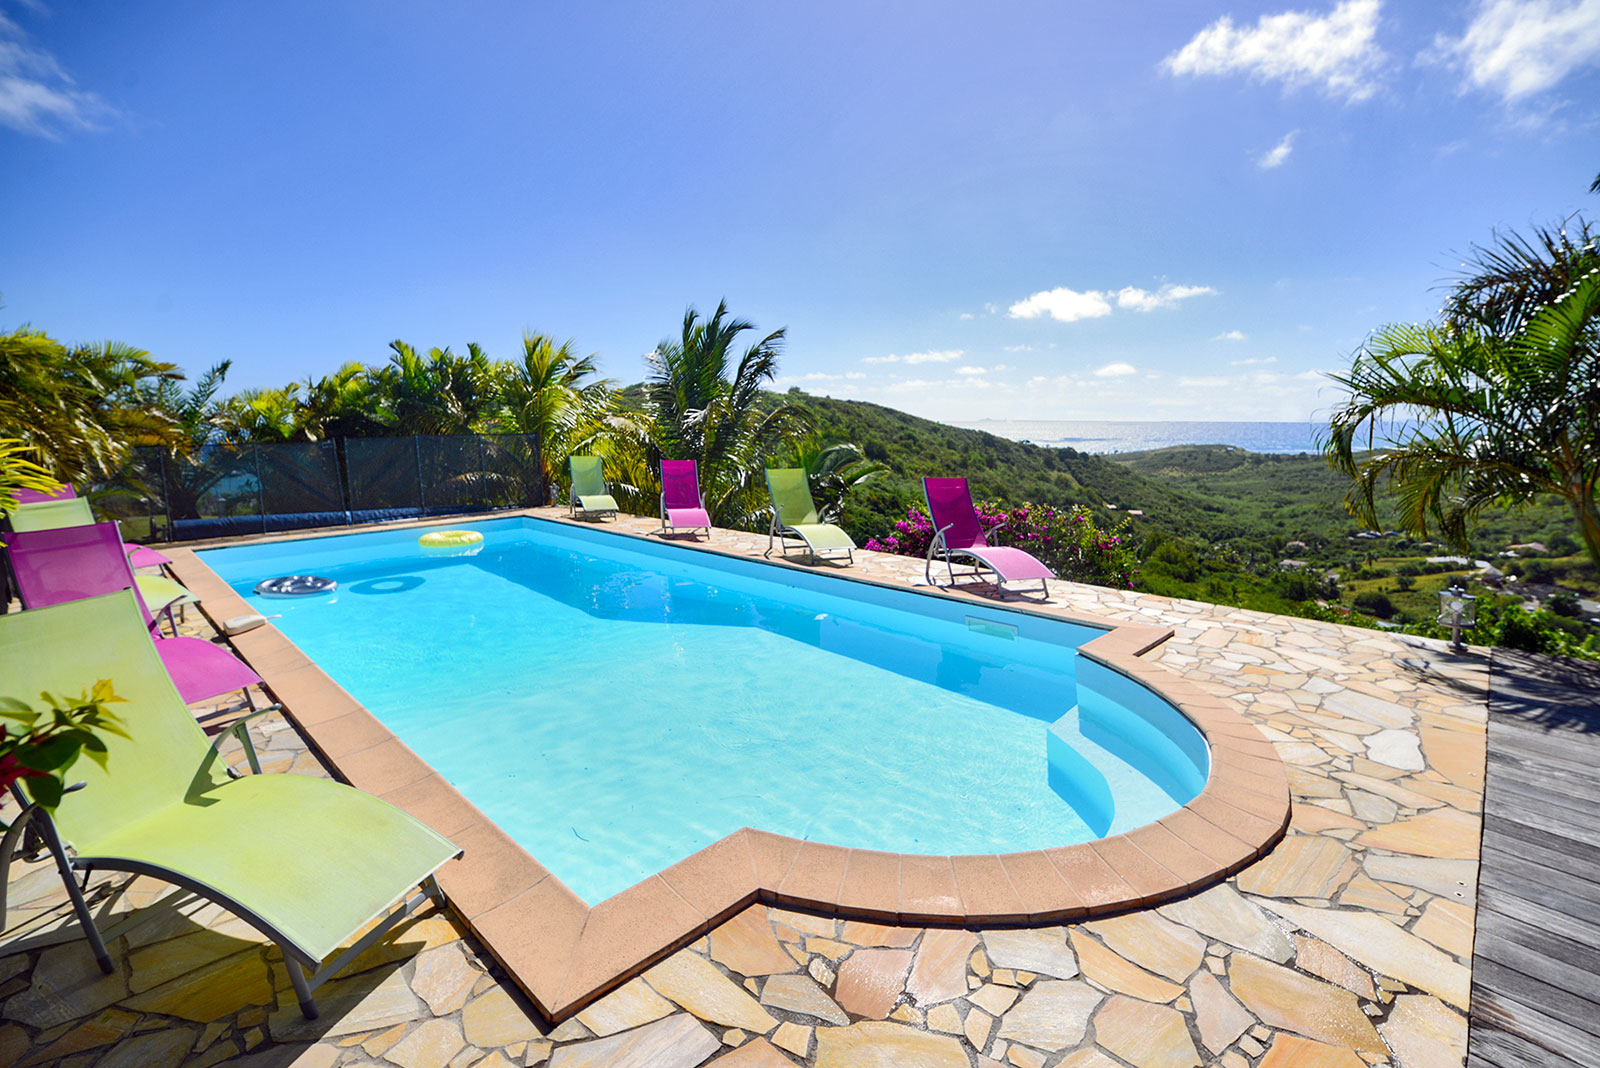 Location villa Sainte Anne Martinique piscine kaz arome